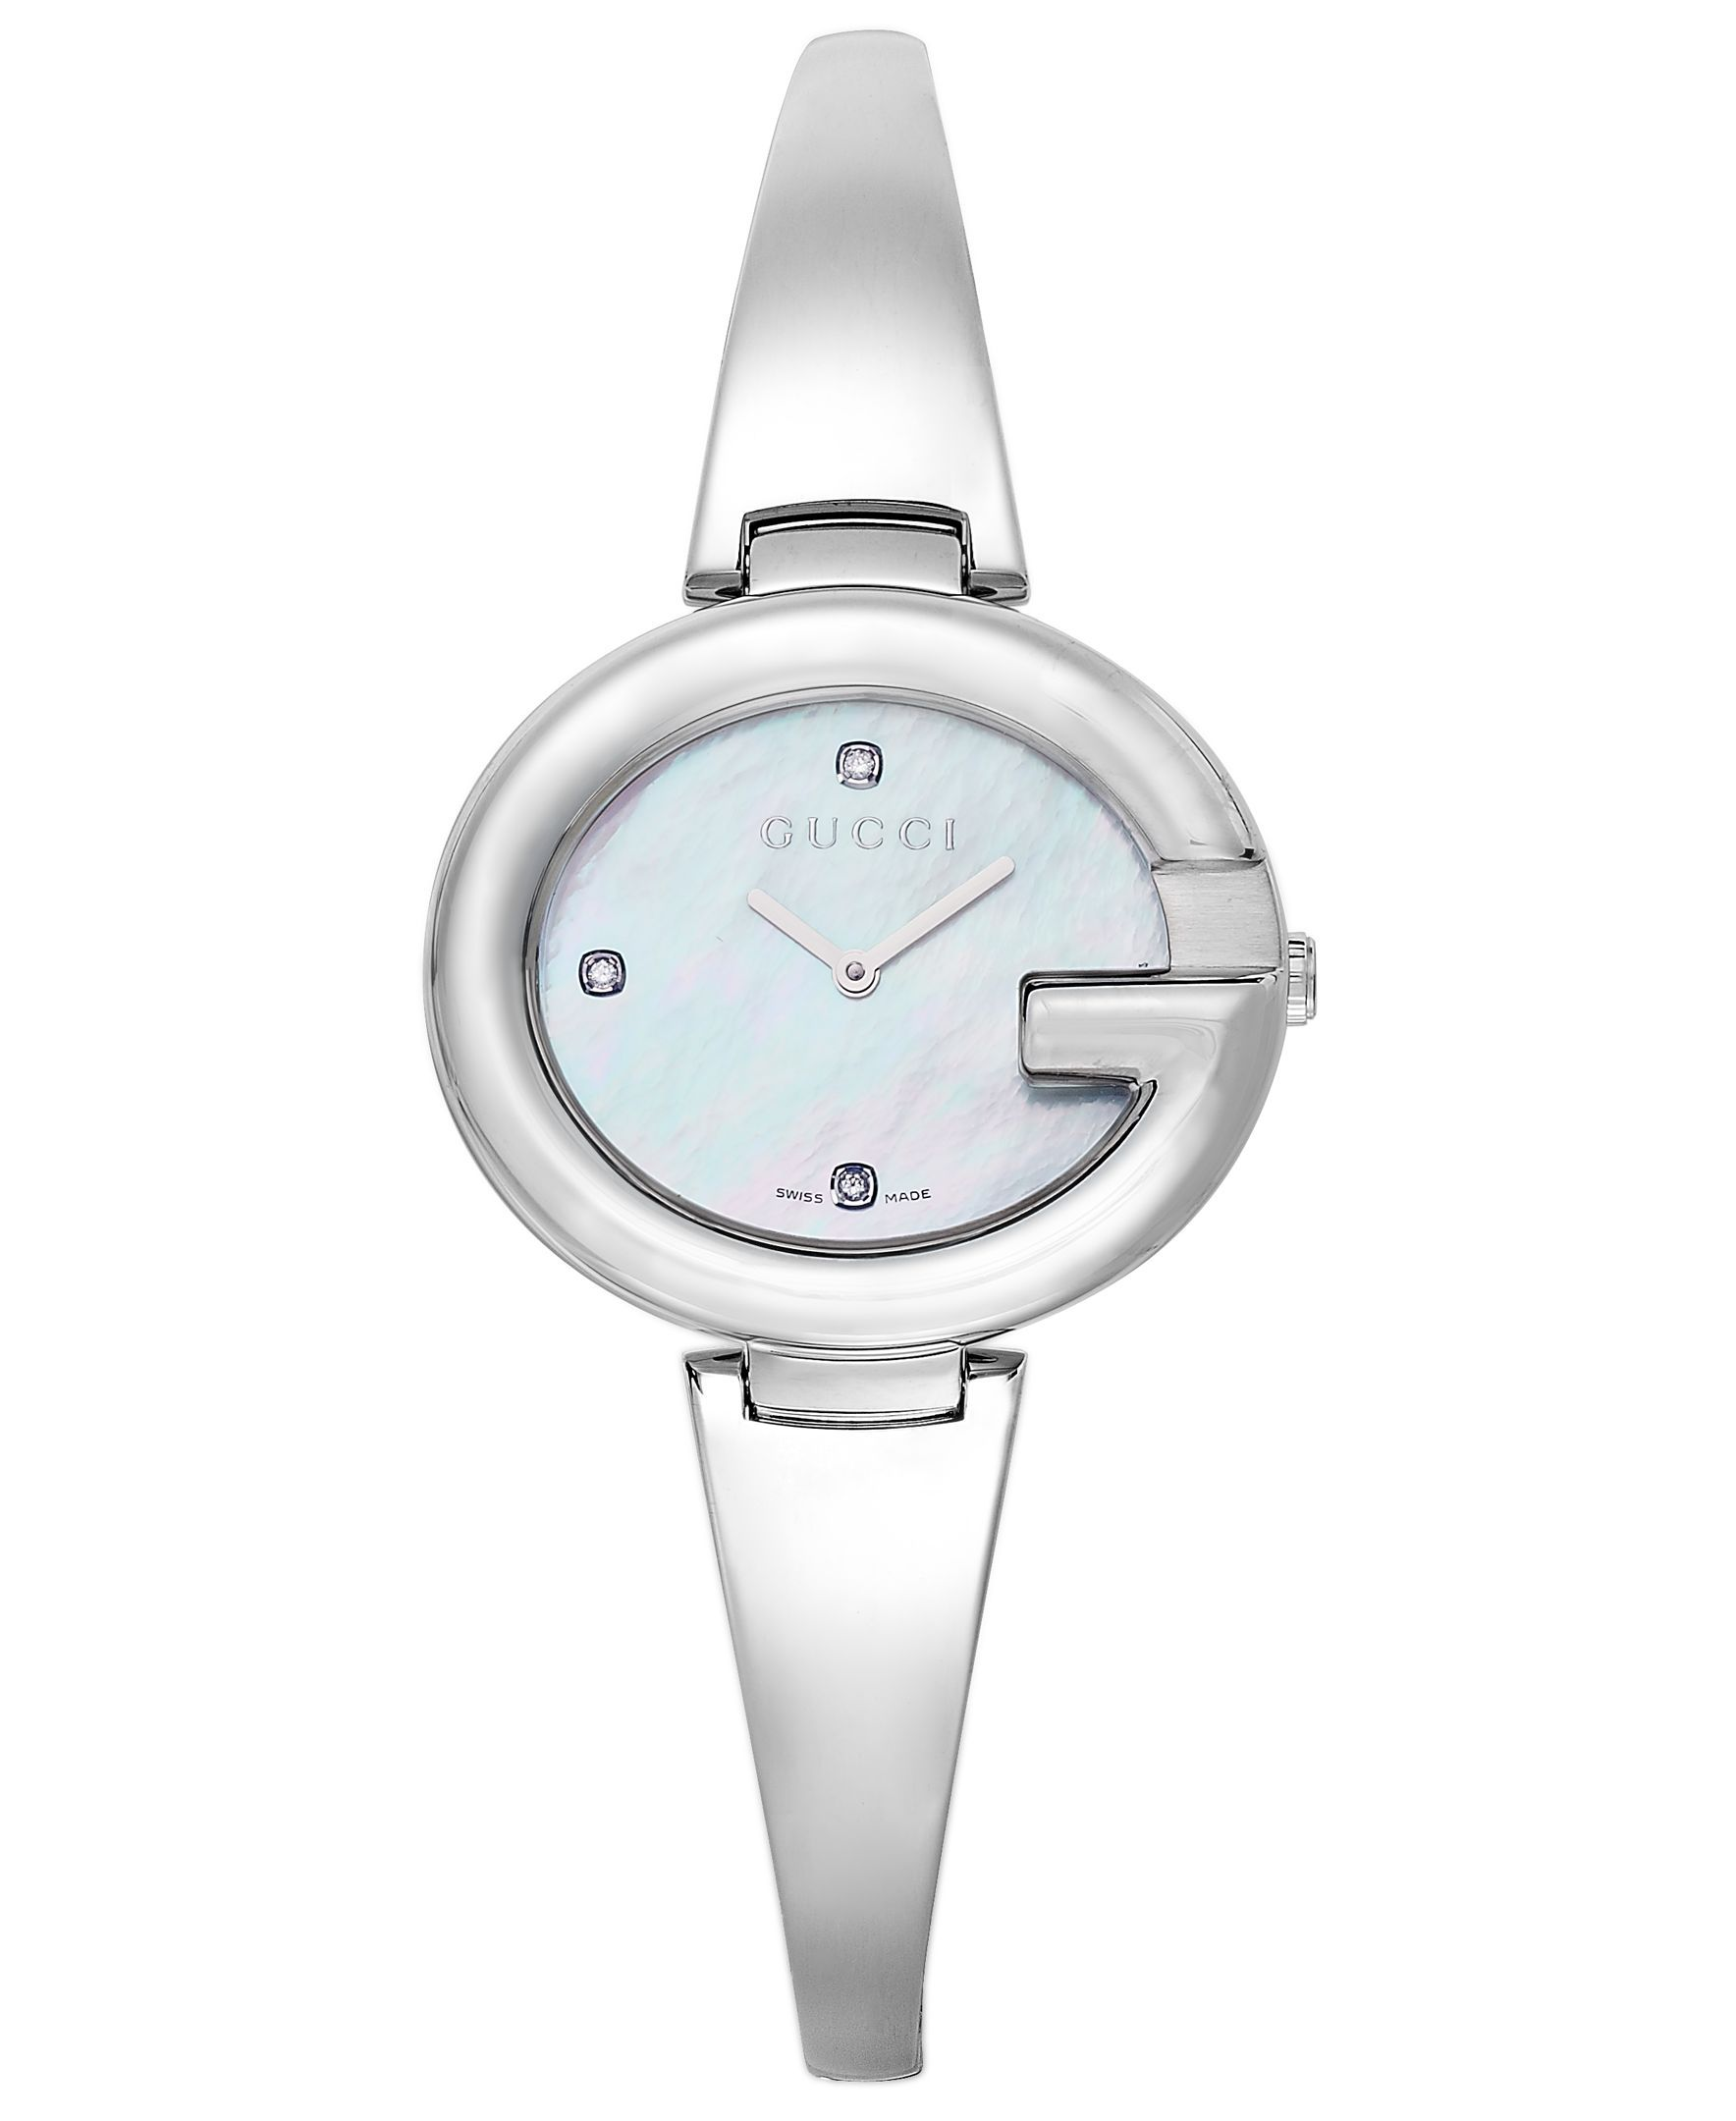 8d0bca023c3 Gucci Watch